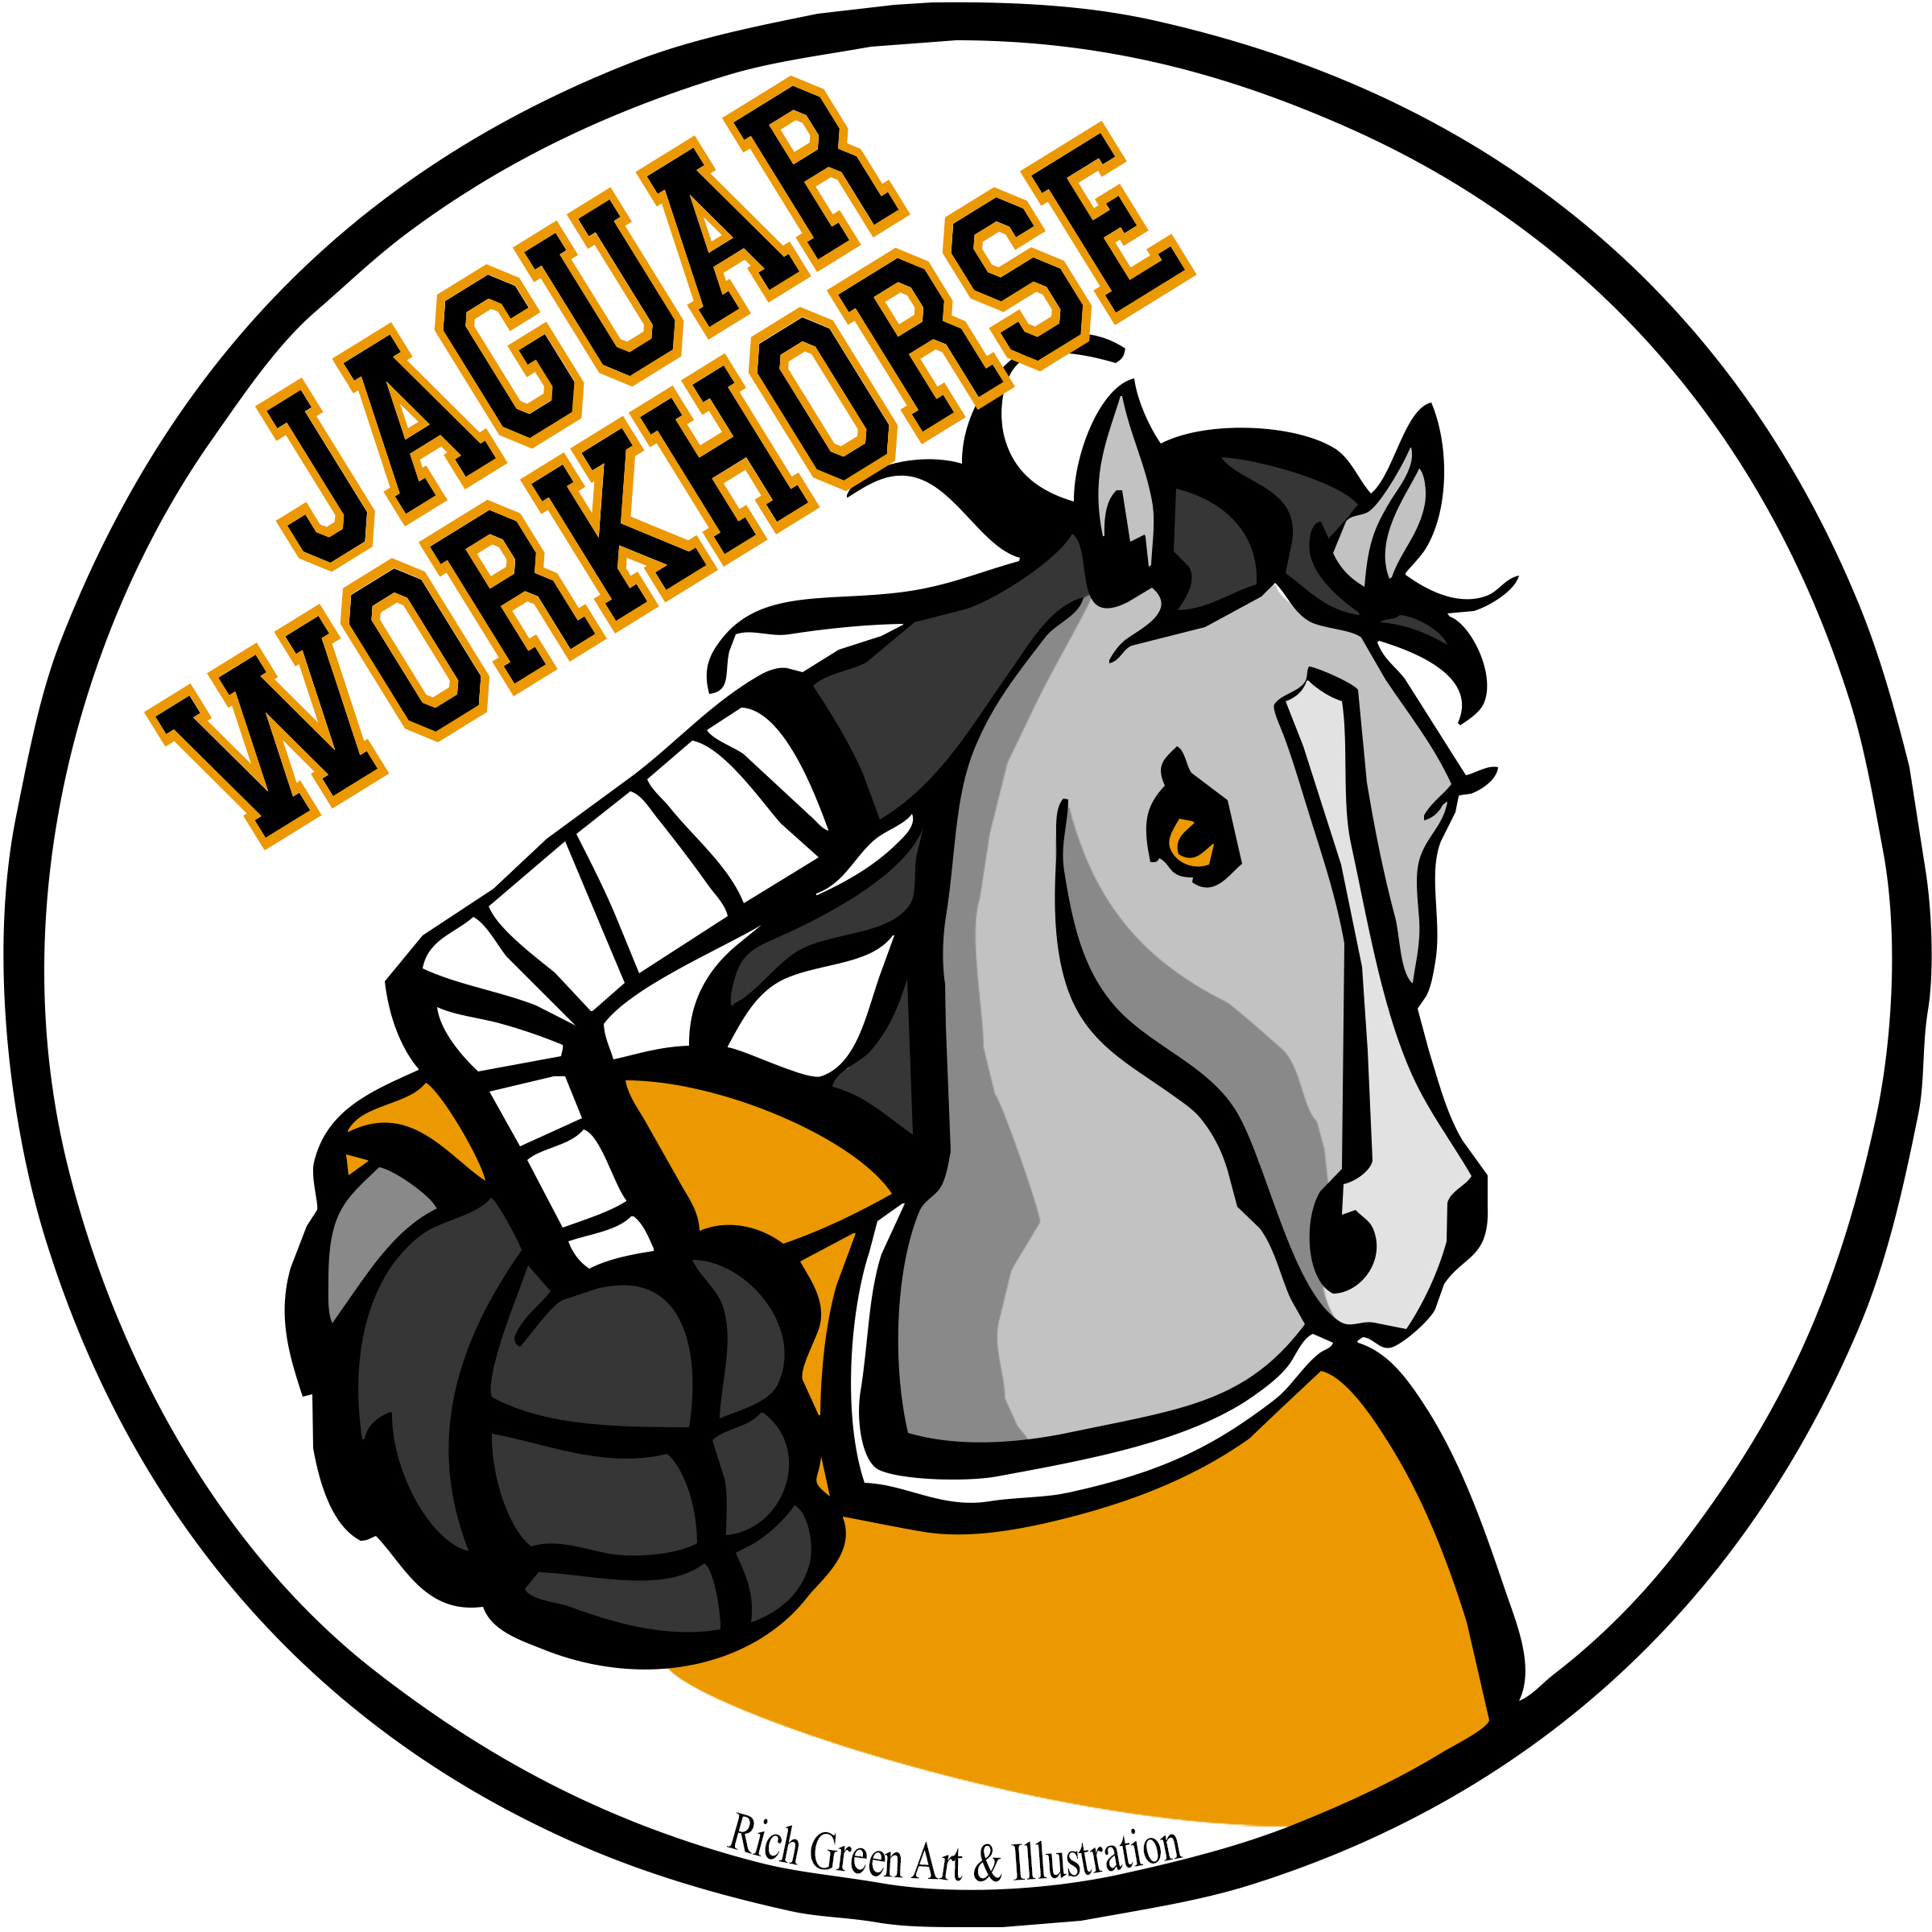 workhorse black and gold large.jpg